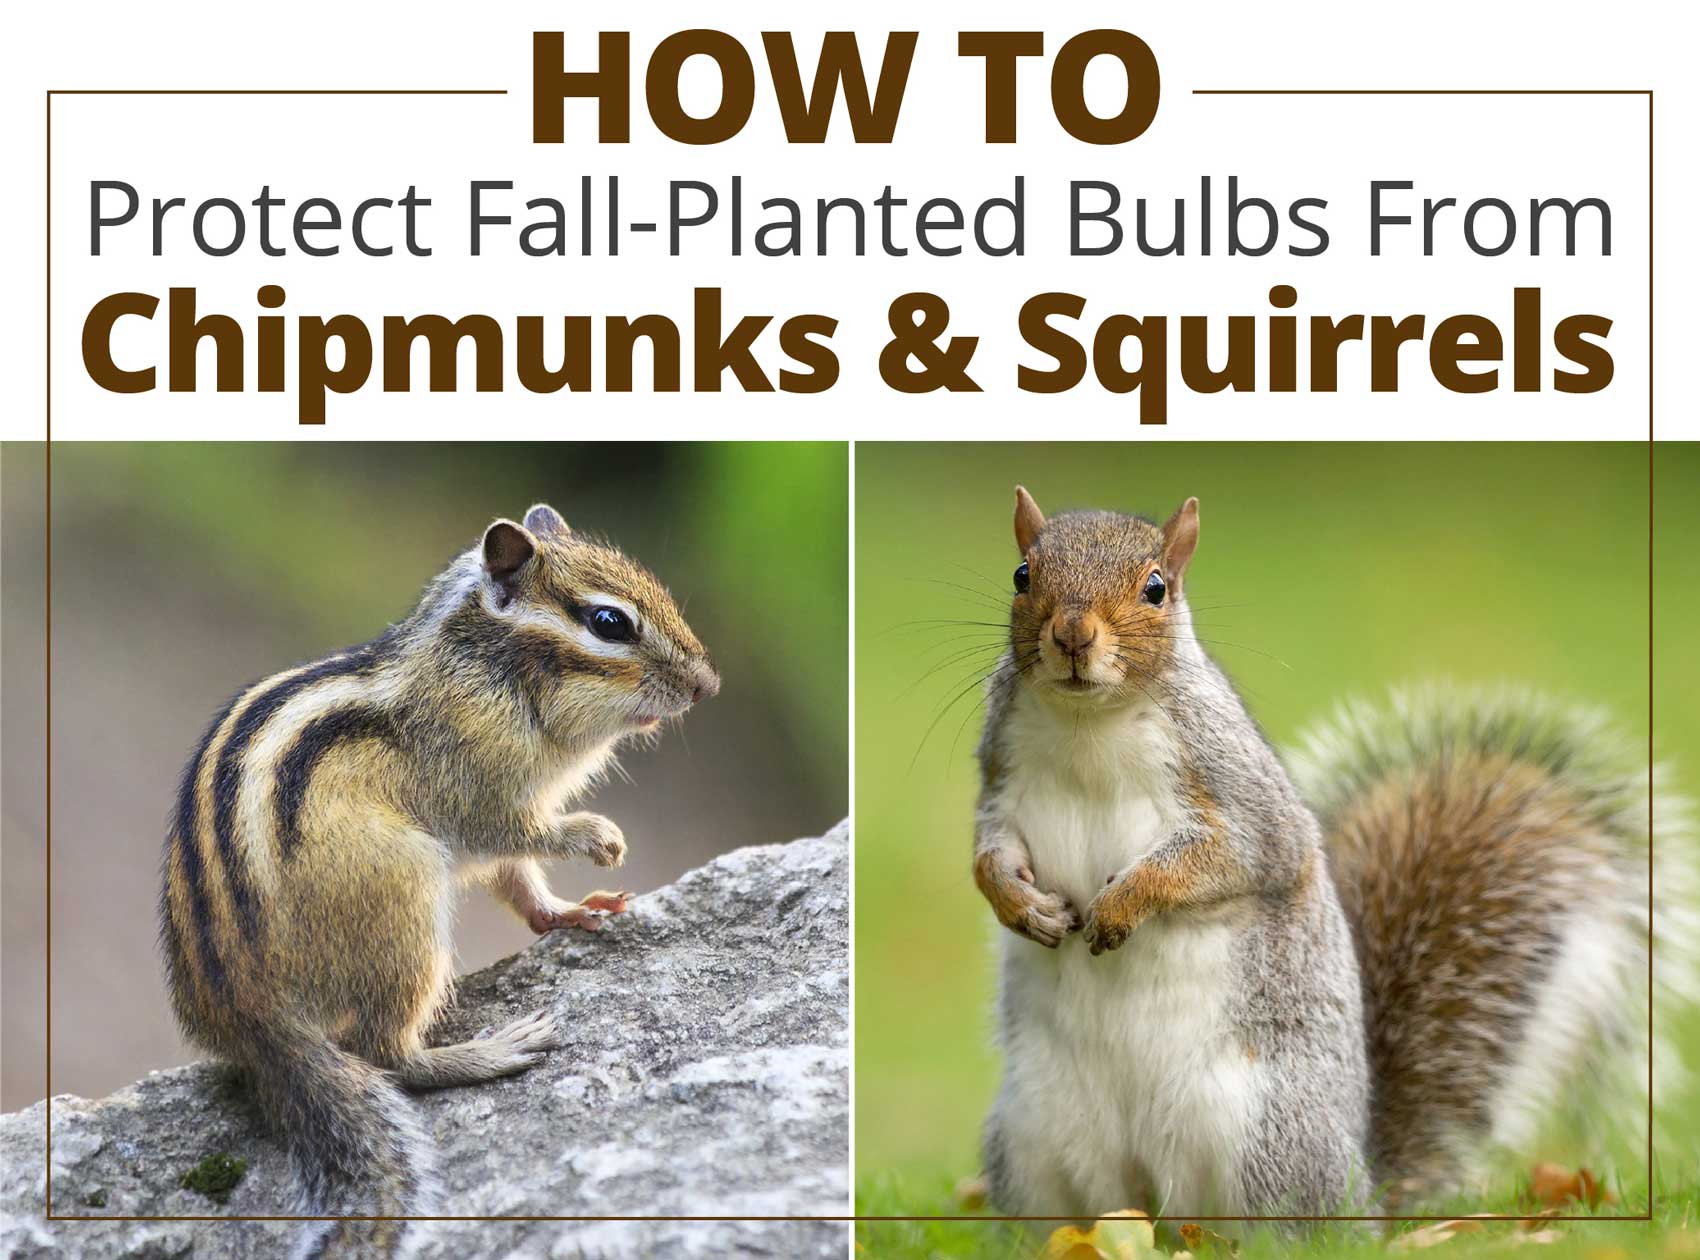 How-To-Proect-Fall-Bulbs-From-Chipmunks-and-Squirrels - Longfield-Gardens